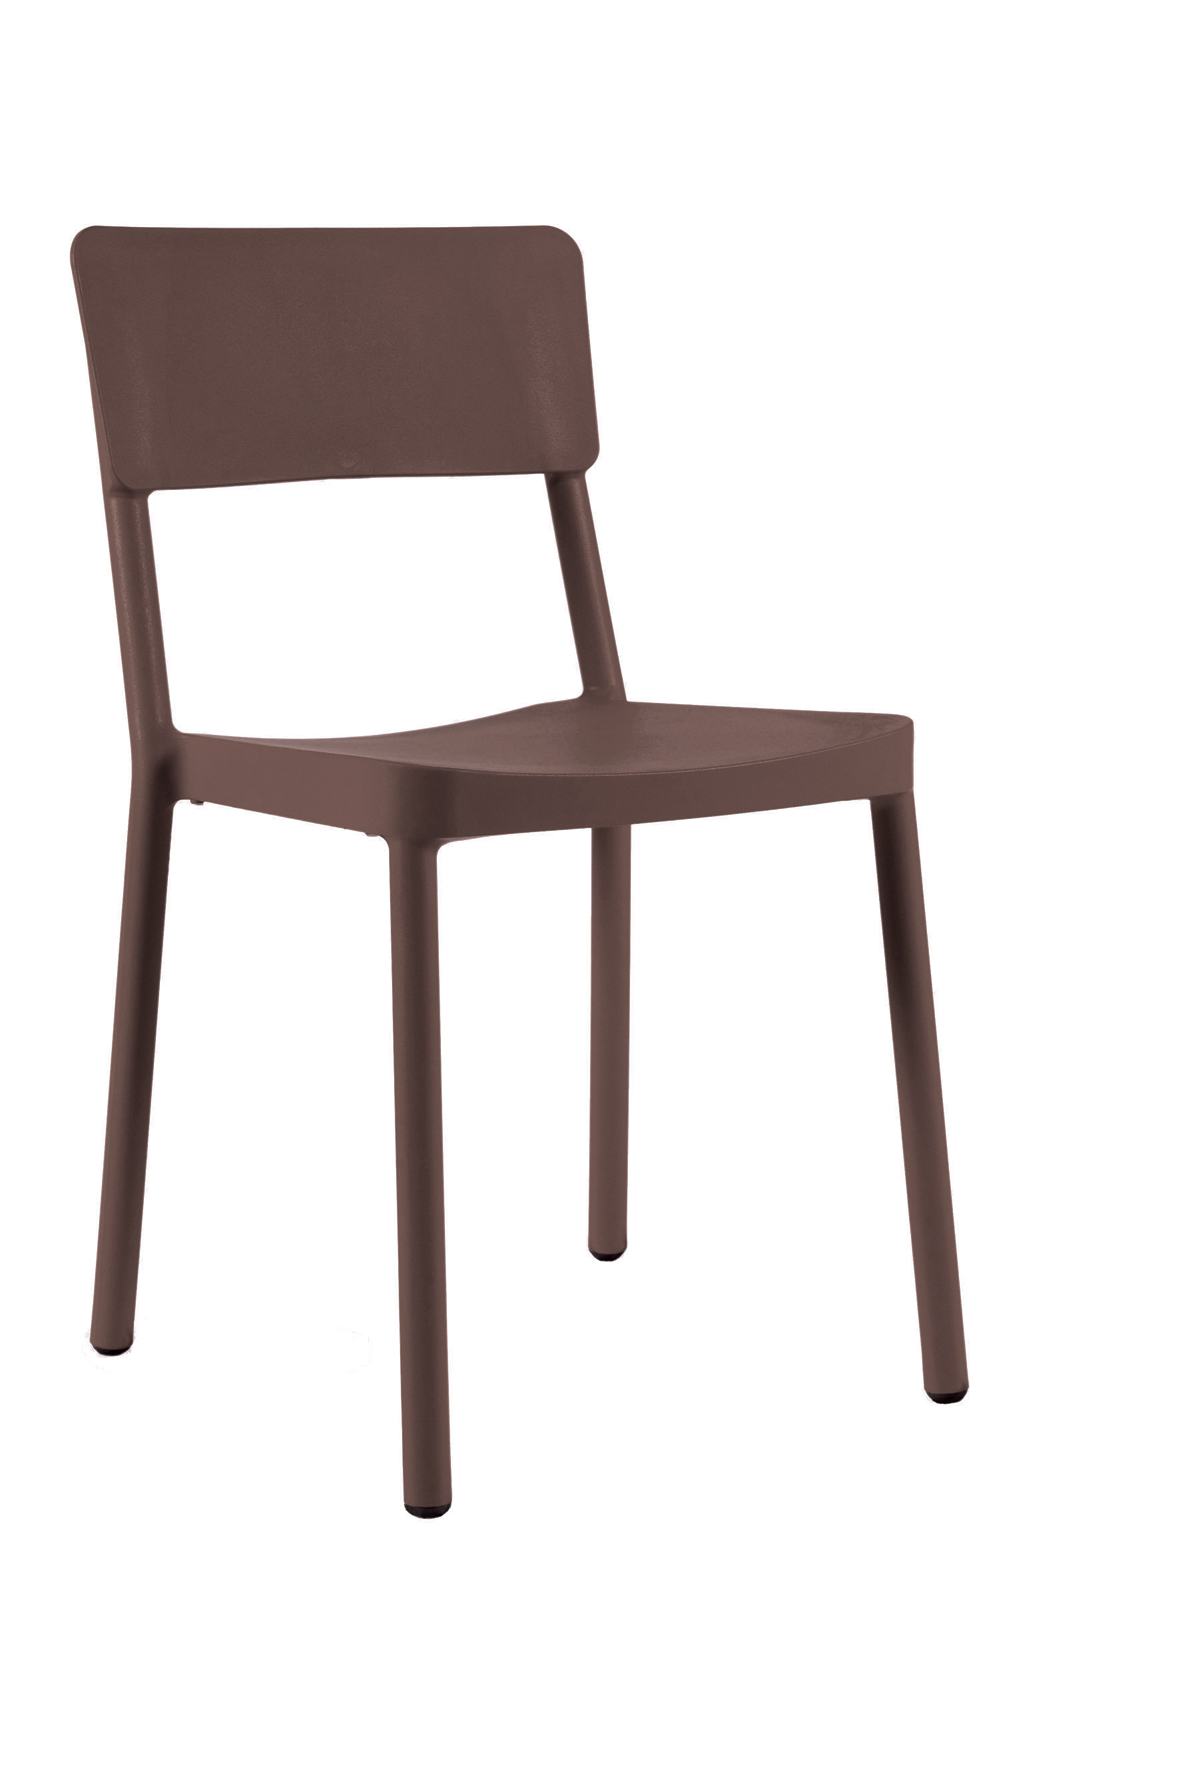 Jack Outdoor Stacking Chair Simply Tables & Chairs